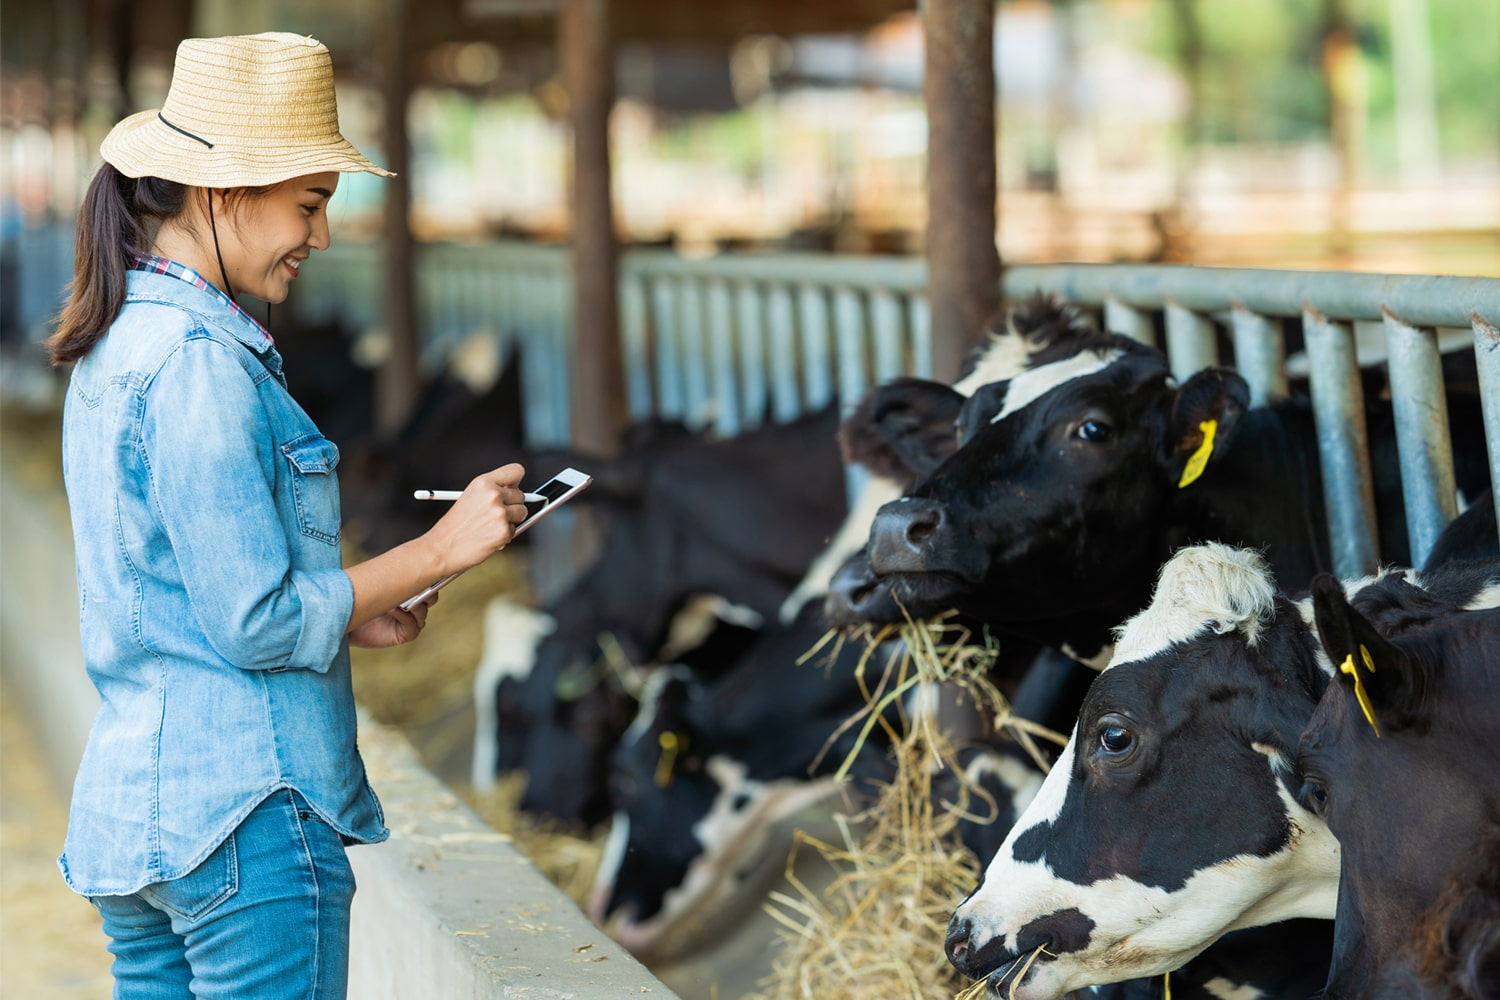 woman checking cows